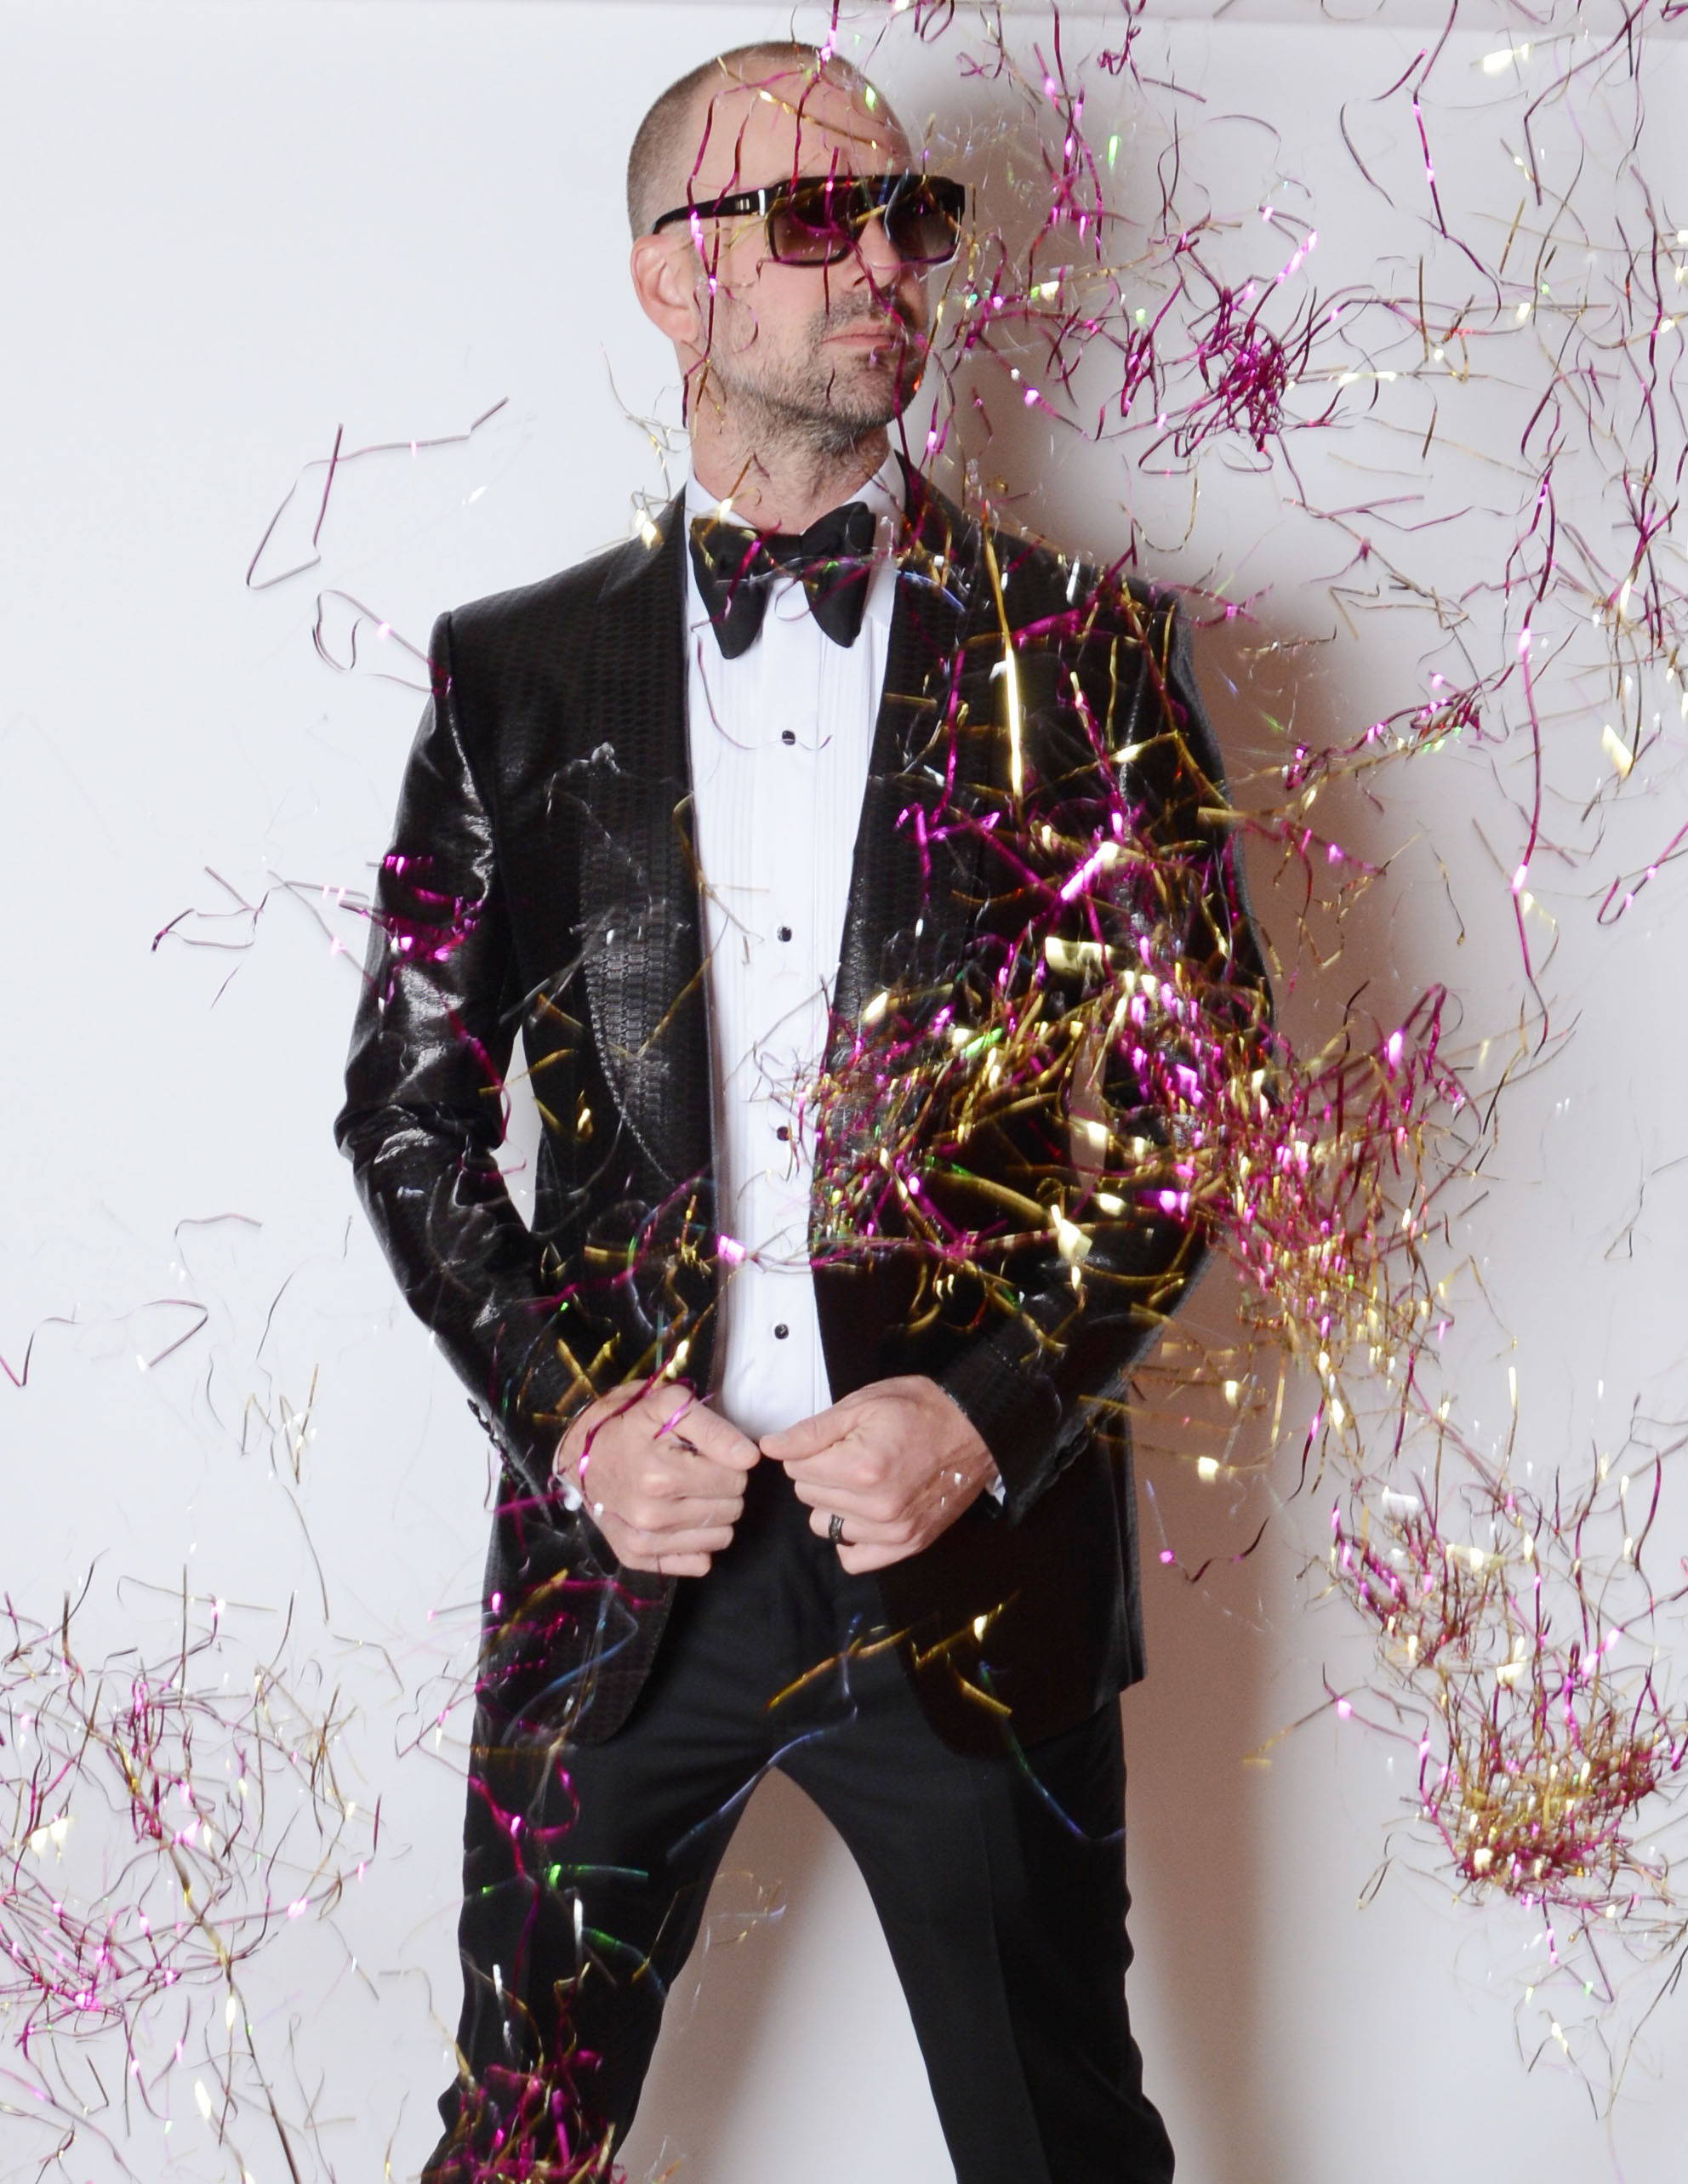 Dr. Barczak in a black tux and sunglasses with confetti dropping down on him